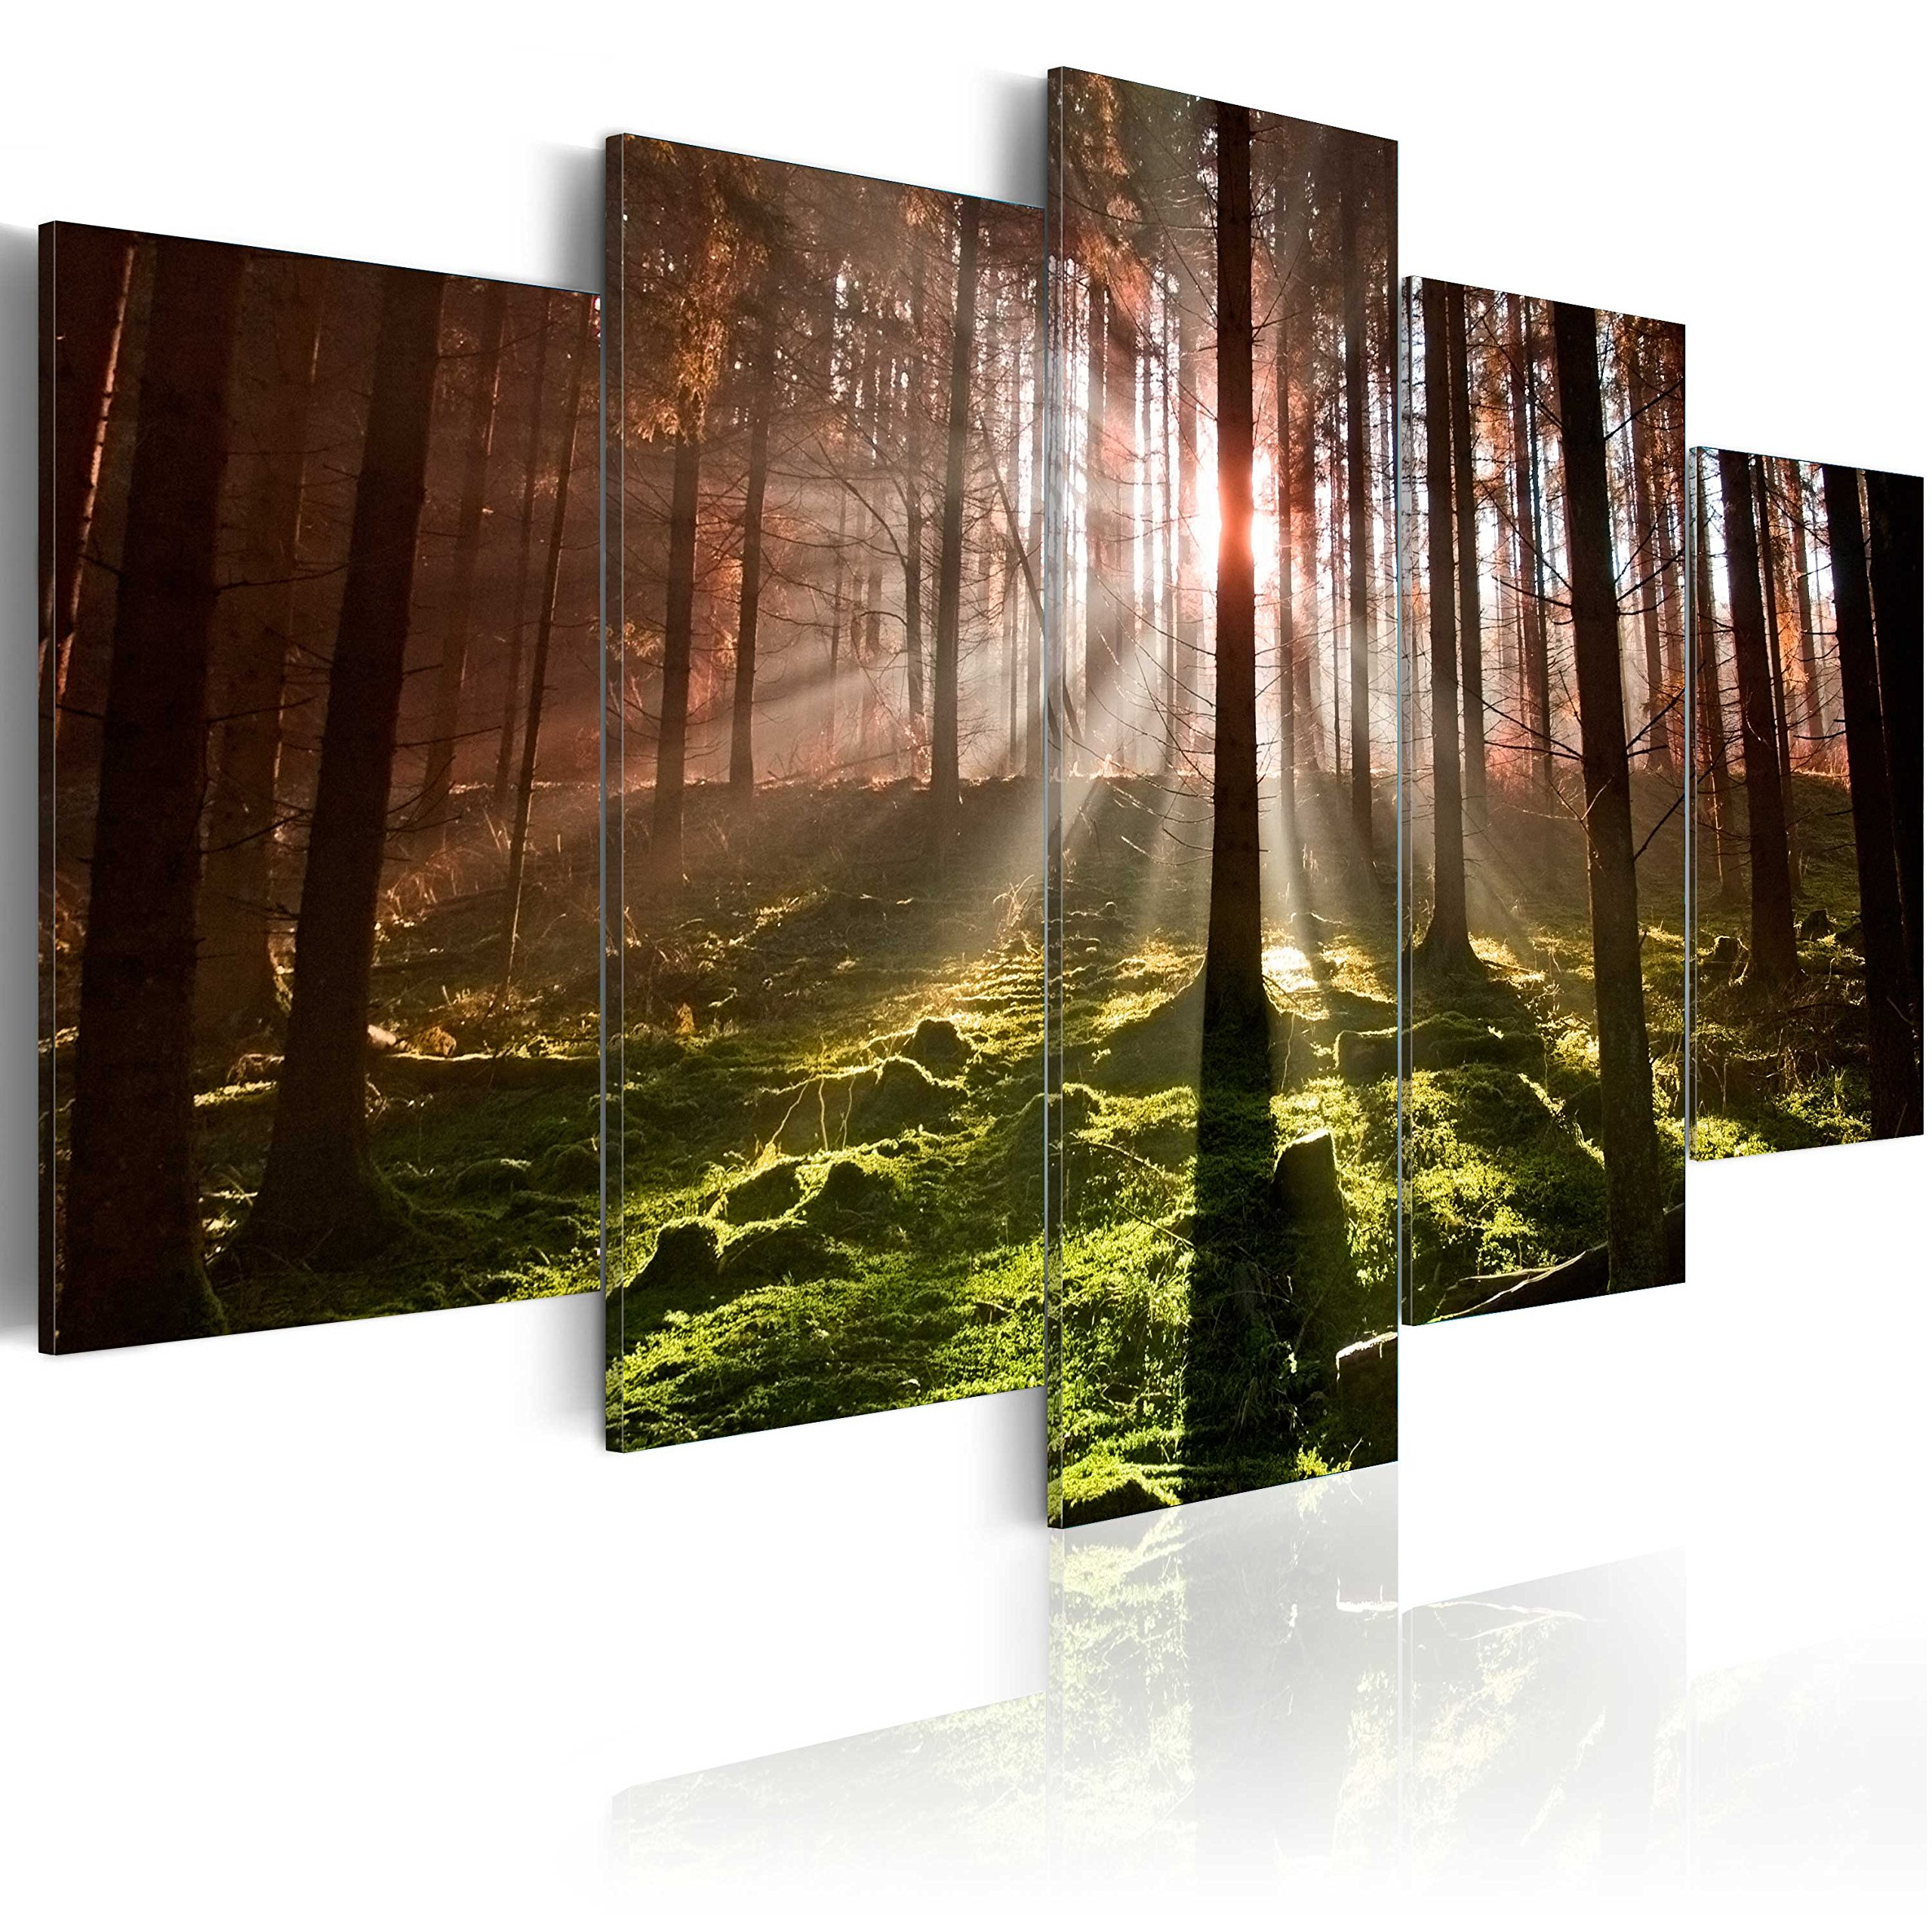 Image 200x100 cm (78,7 by 39,4 in) - Image printed on canvas - 5 pieces - NATURE 030213-33 by artgeist